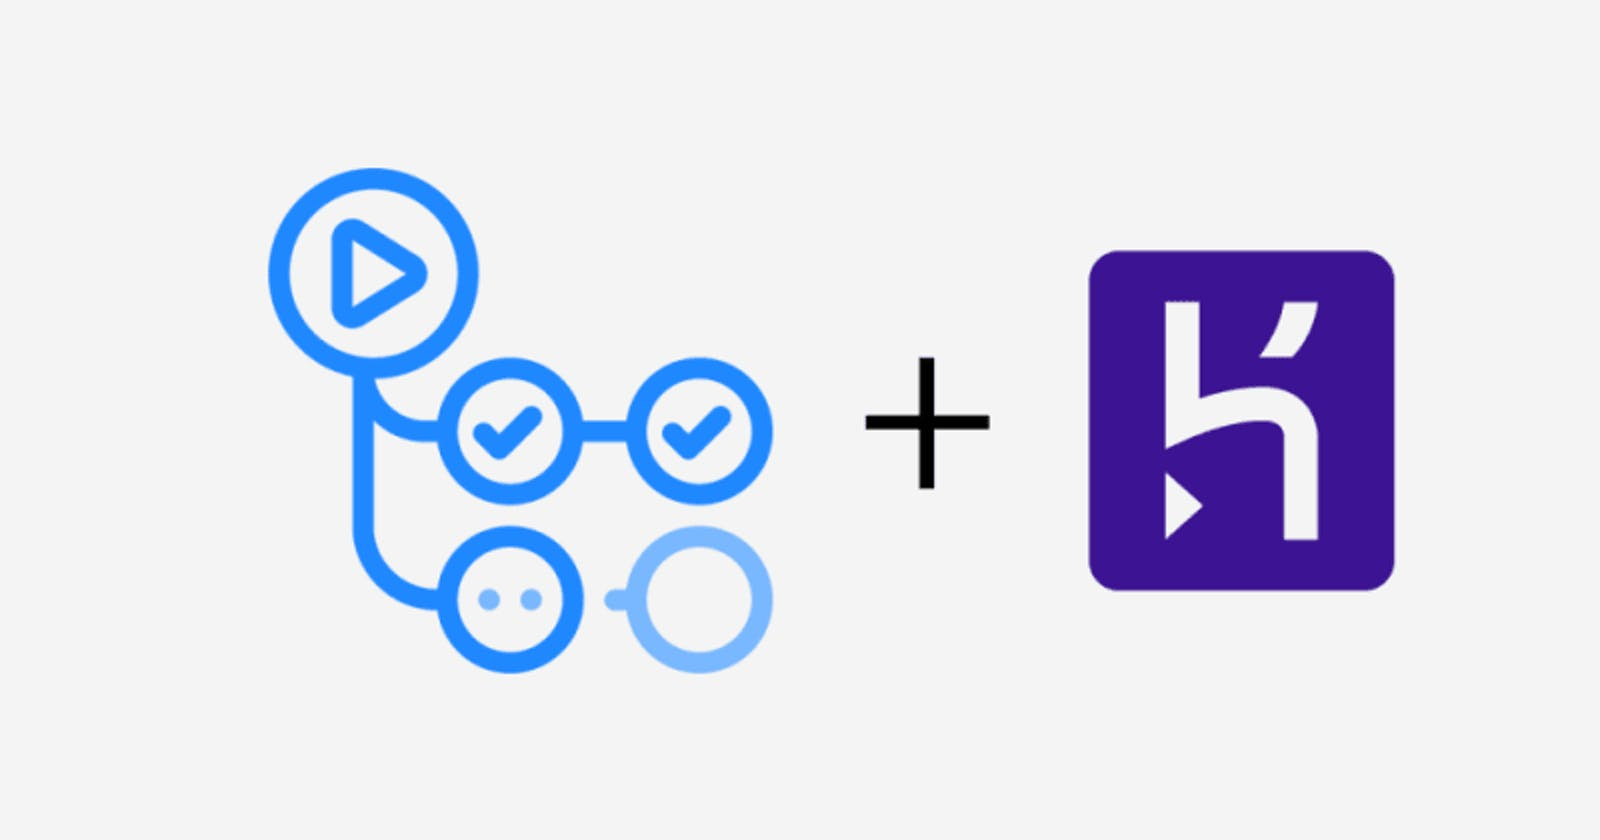 Update Heroku environment variable after GitHub release